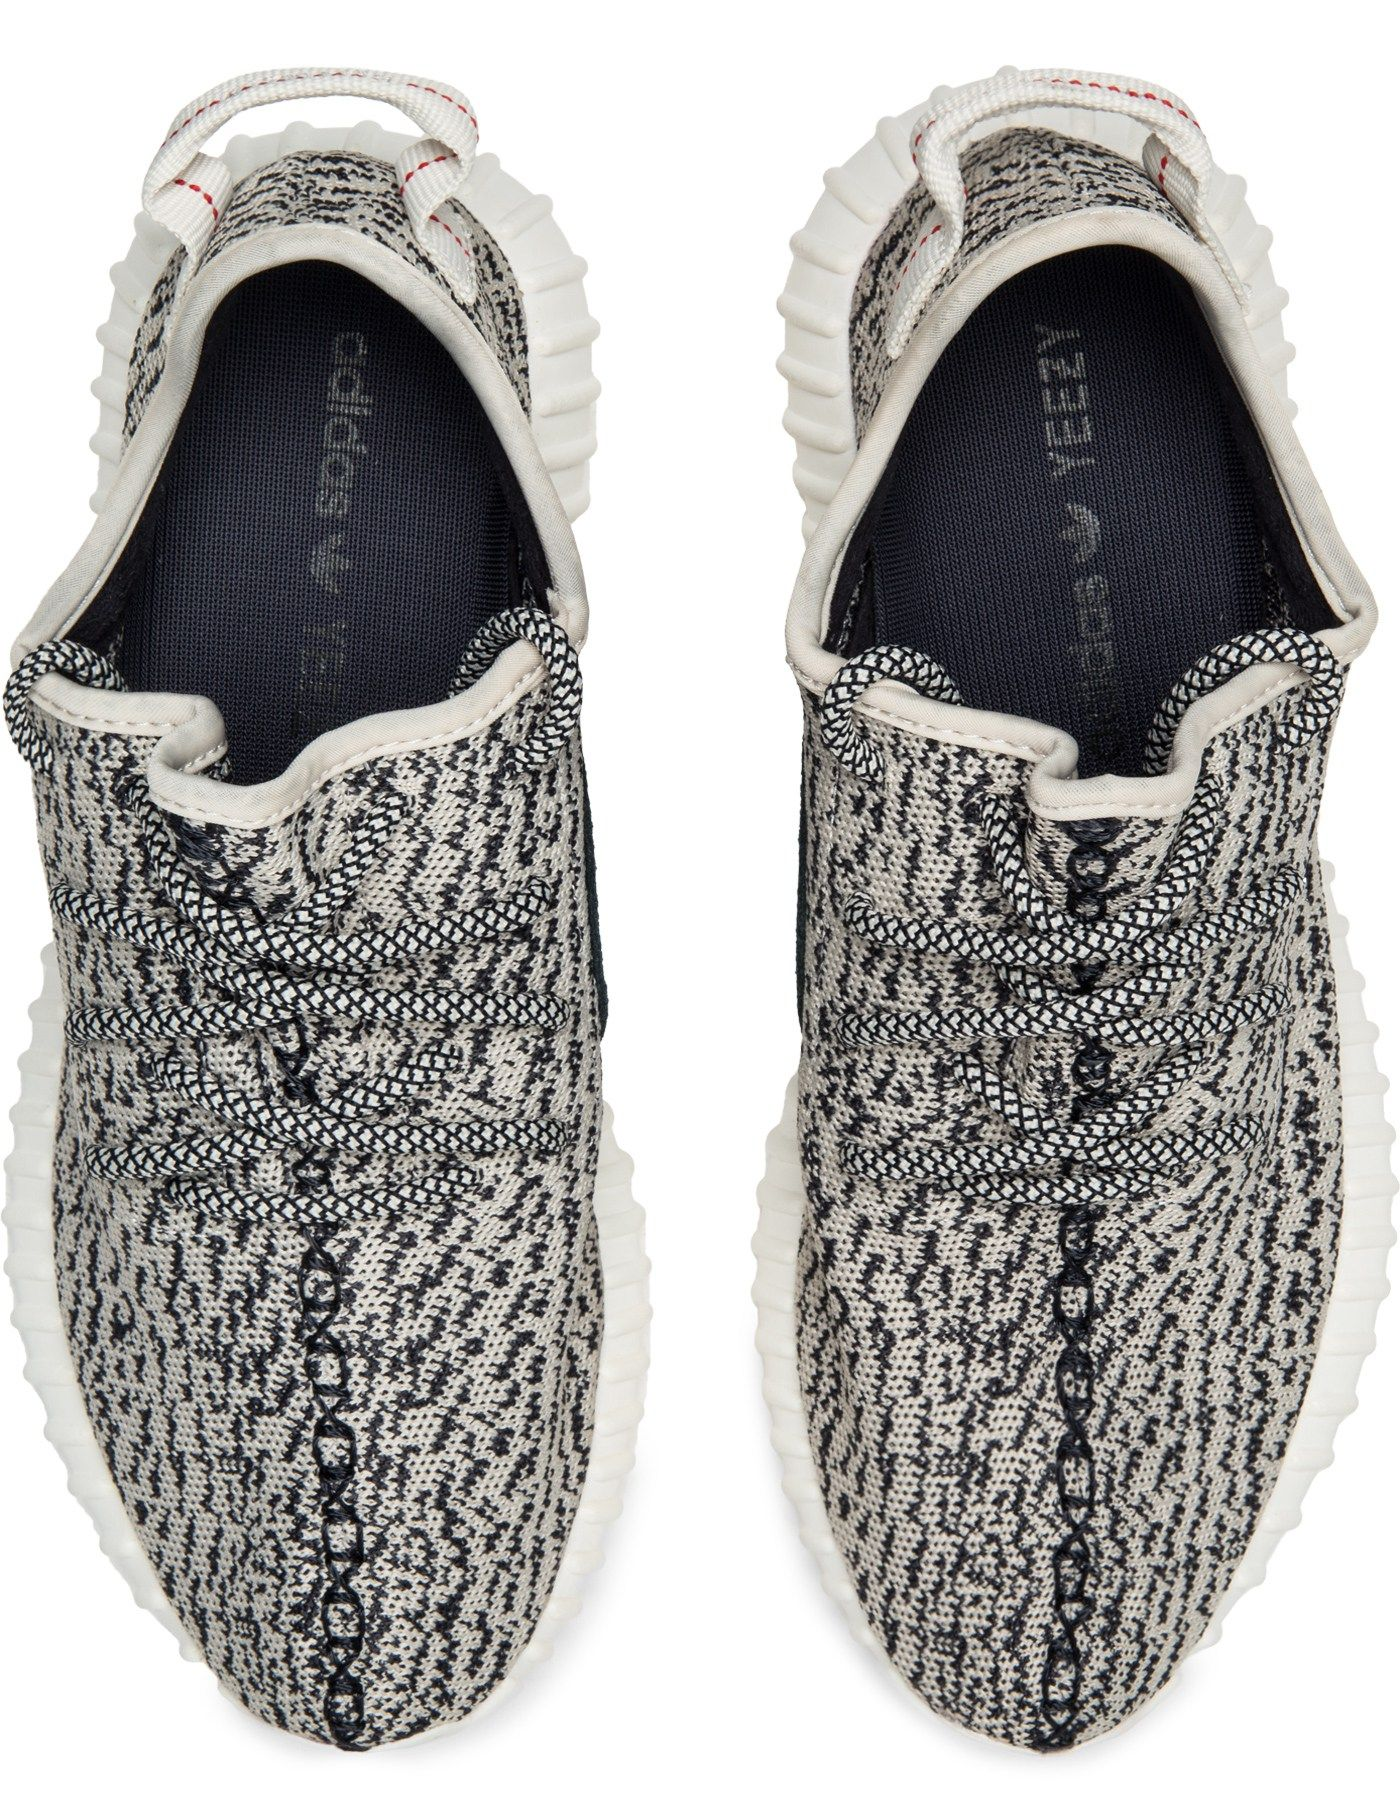 """Shop adidas Yeezy Boost 350 """"Turtle Dove"""" at HBX. Free Worldwide Shipping available."""